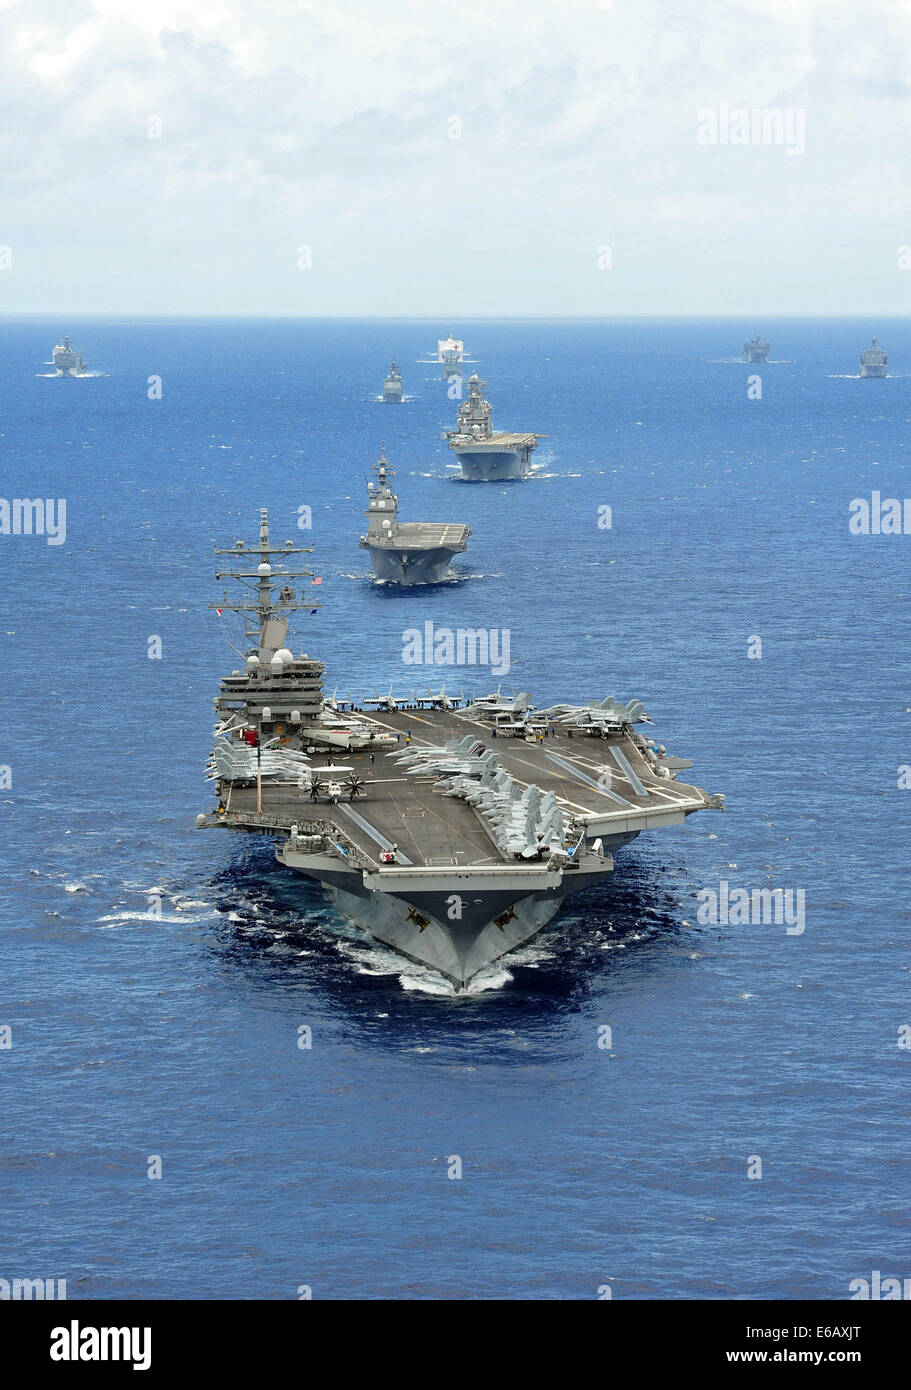 The aircraft carrier USS Ronald Reagan (CVN 76) leads a formation of vessels from 15 international partnership nations - Stock Image